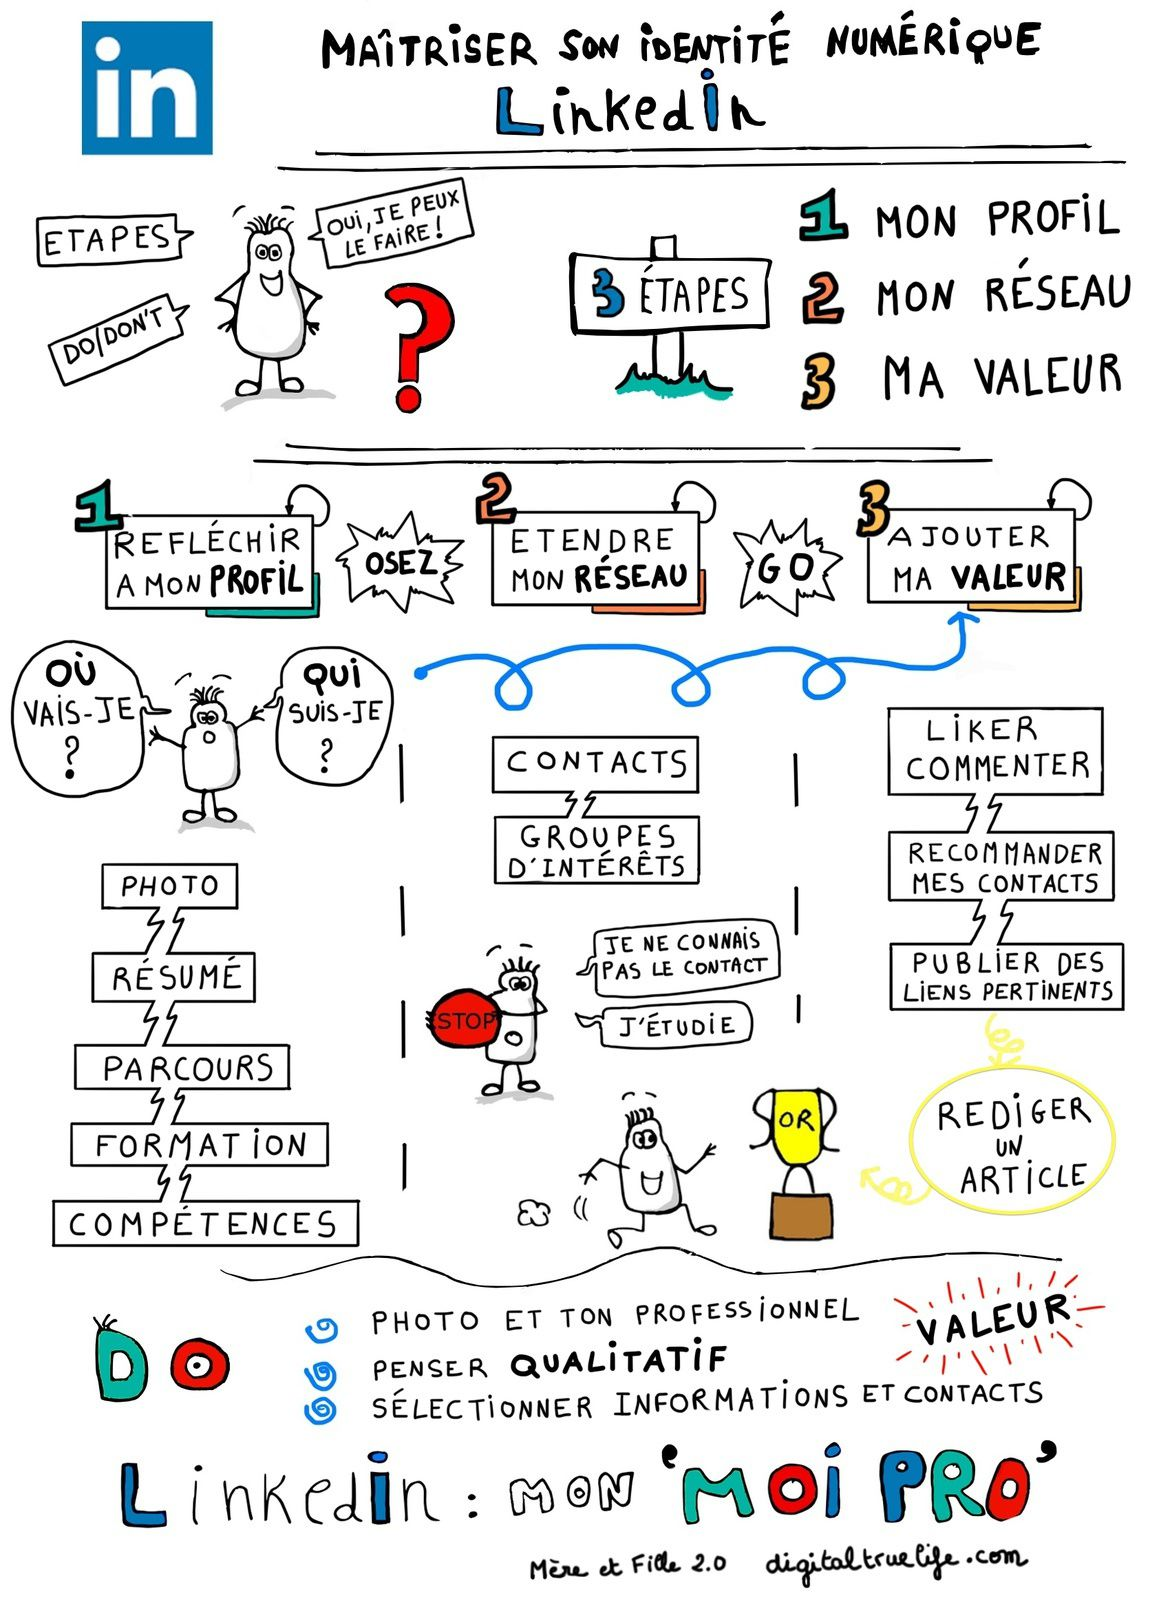 How to manage my digital identity? #LinkedIn for beginners #socialmedia EN/FR #sketchnotes